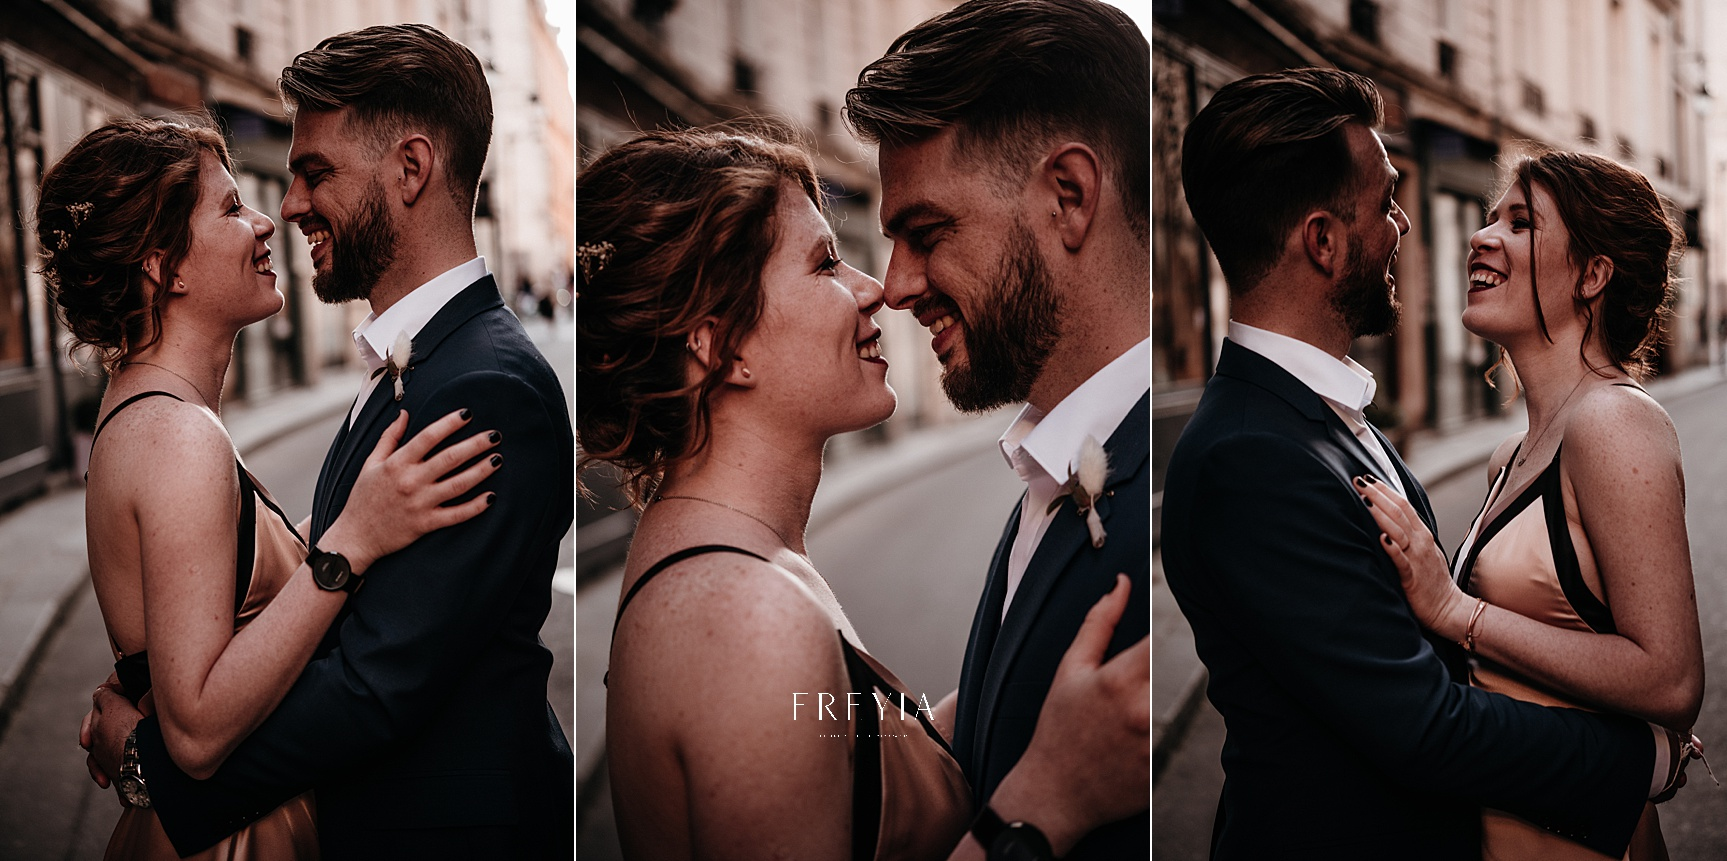 P + F |  mariage reportage alternatif moody intime vintage naturel boho boheme |  PHOTOGRAPHE mariage PARIS france destination  | FREYIA photography_-320.jpg